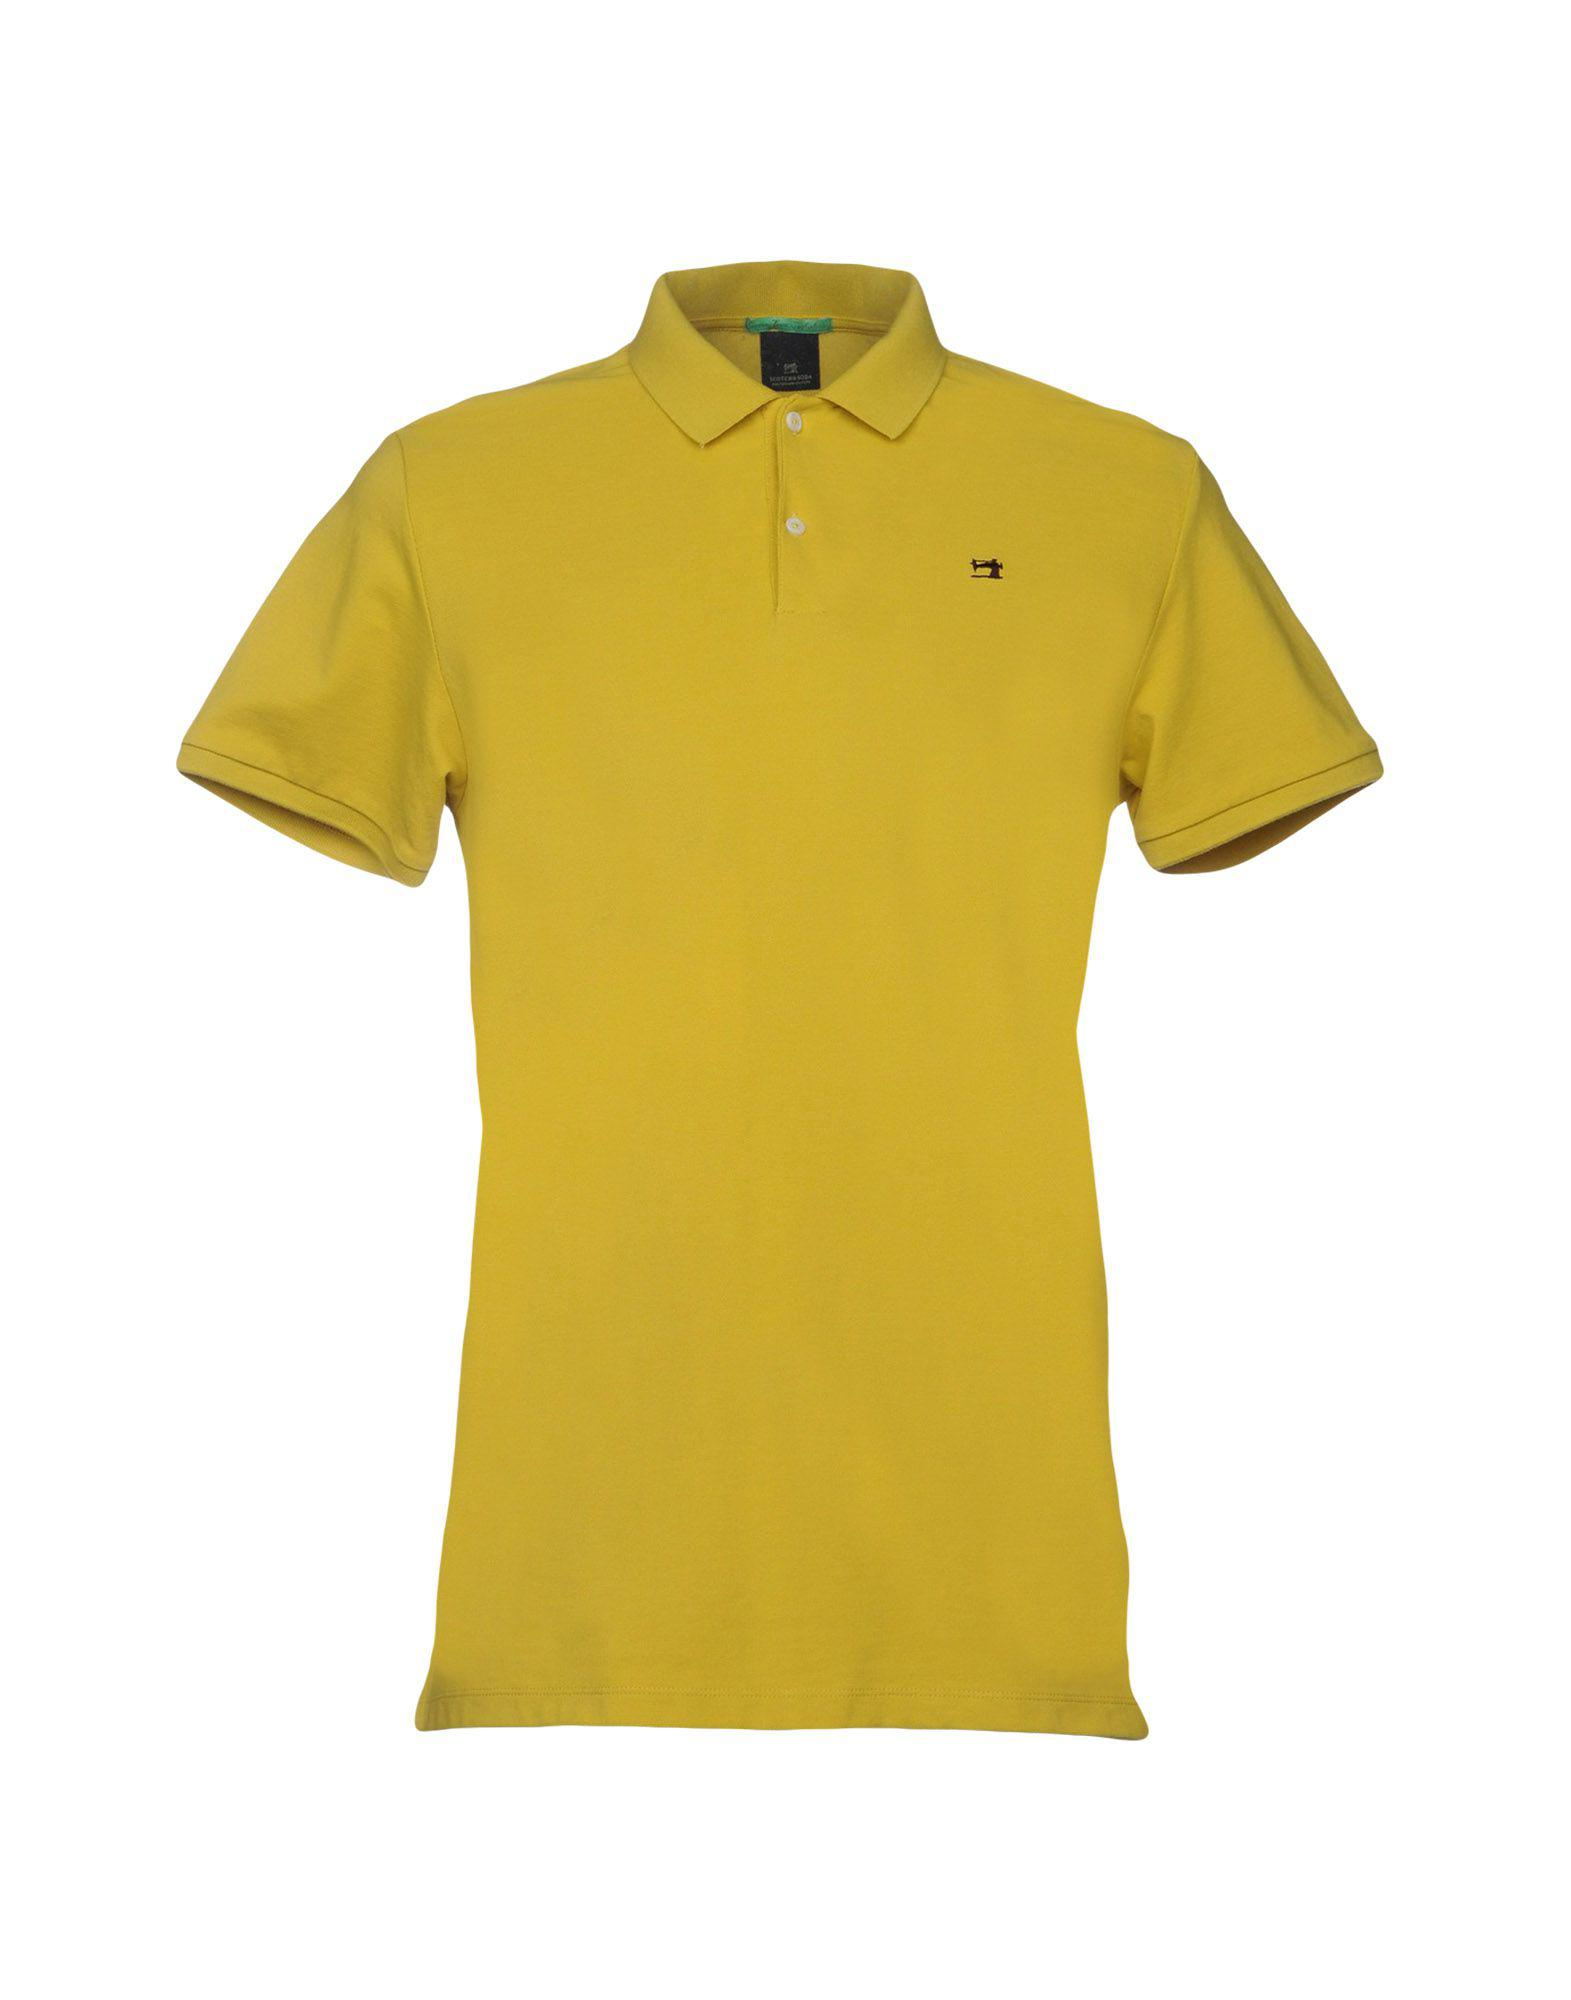 lyst scotch soda polo shirt in yellow for men. Black Bedroom Furniture Sets. Home Design Ideas